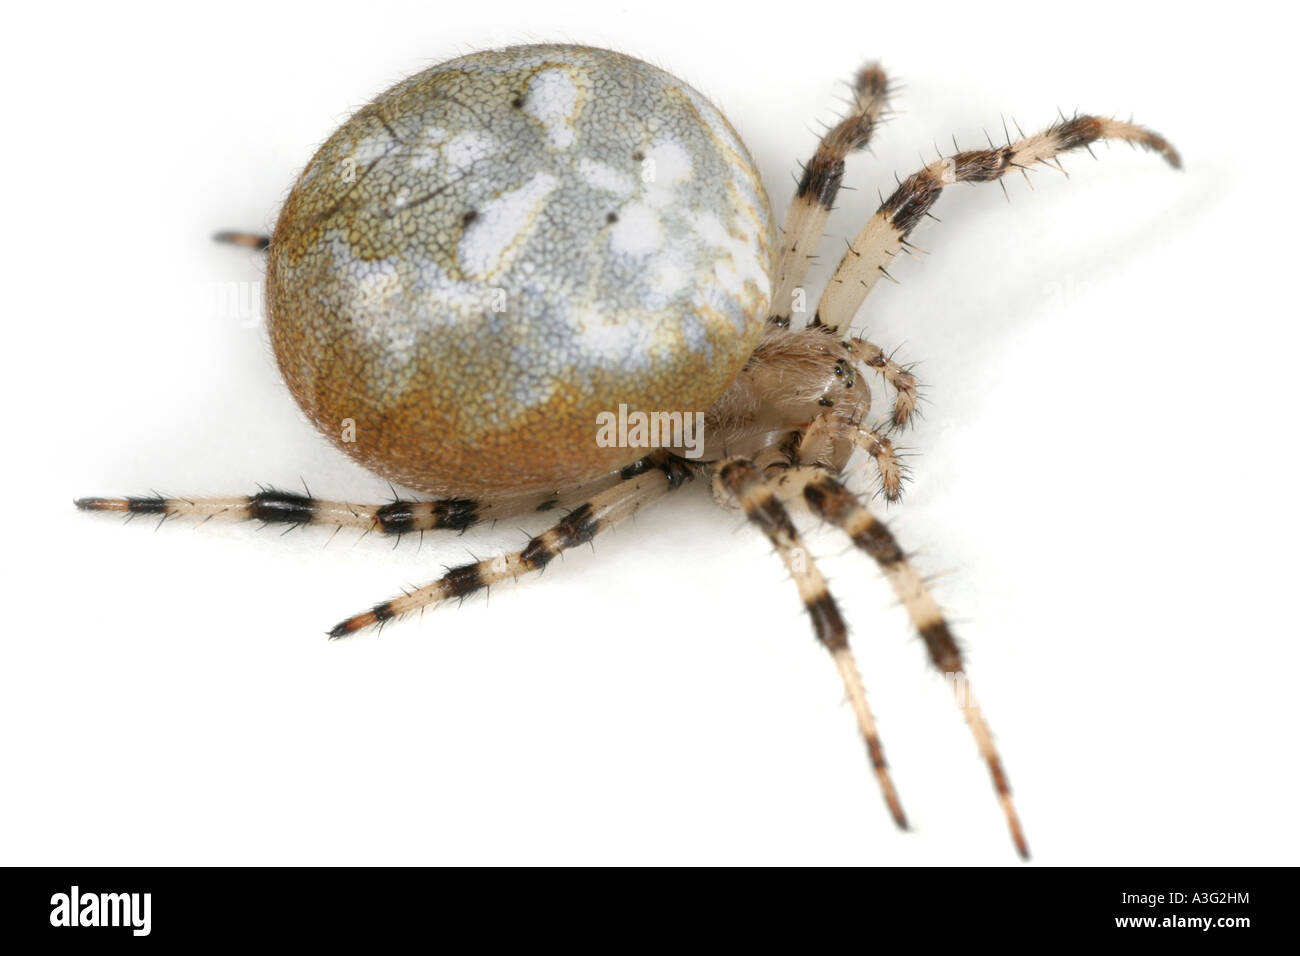 Araneus Quadratus spider on white background. Four Spot Orbweaver Stock Photo